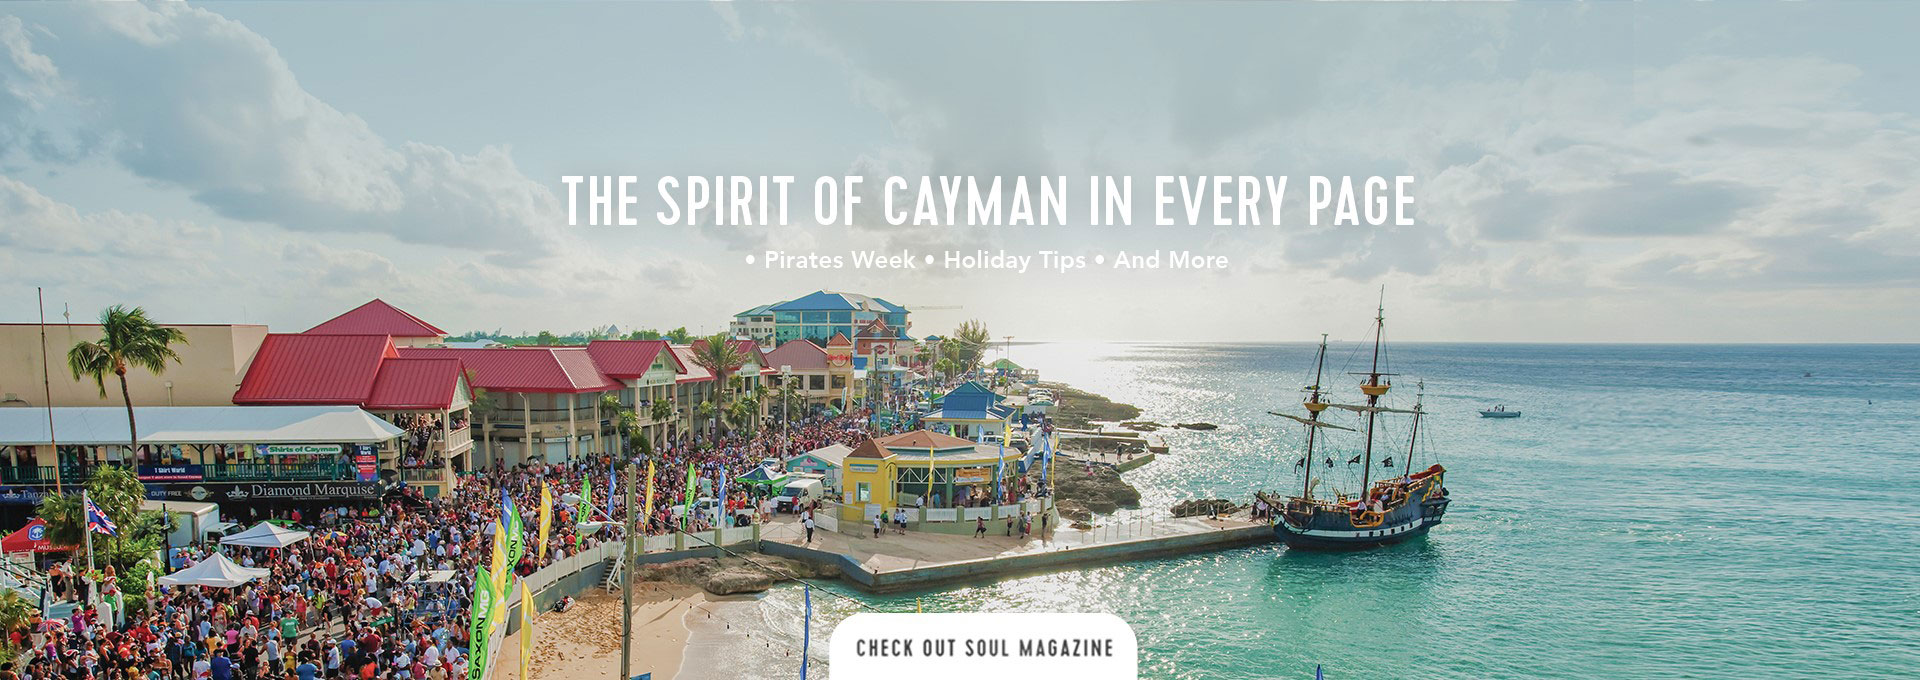 Soul Magazine - The Spirit of Cayman in Every Page